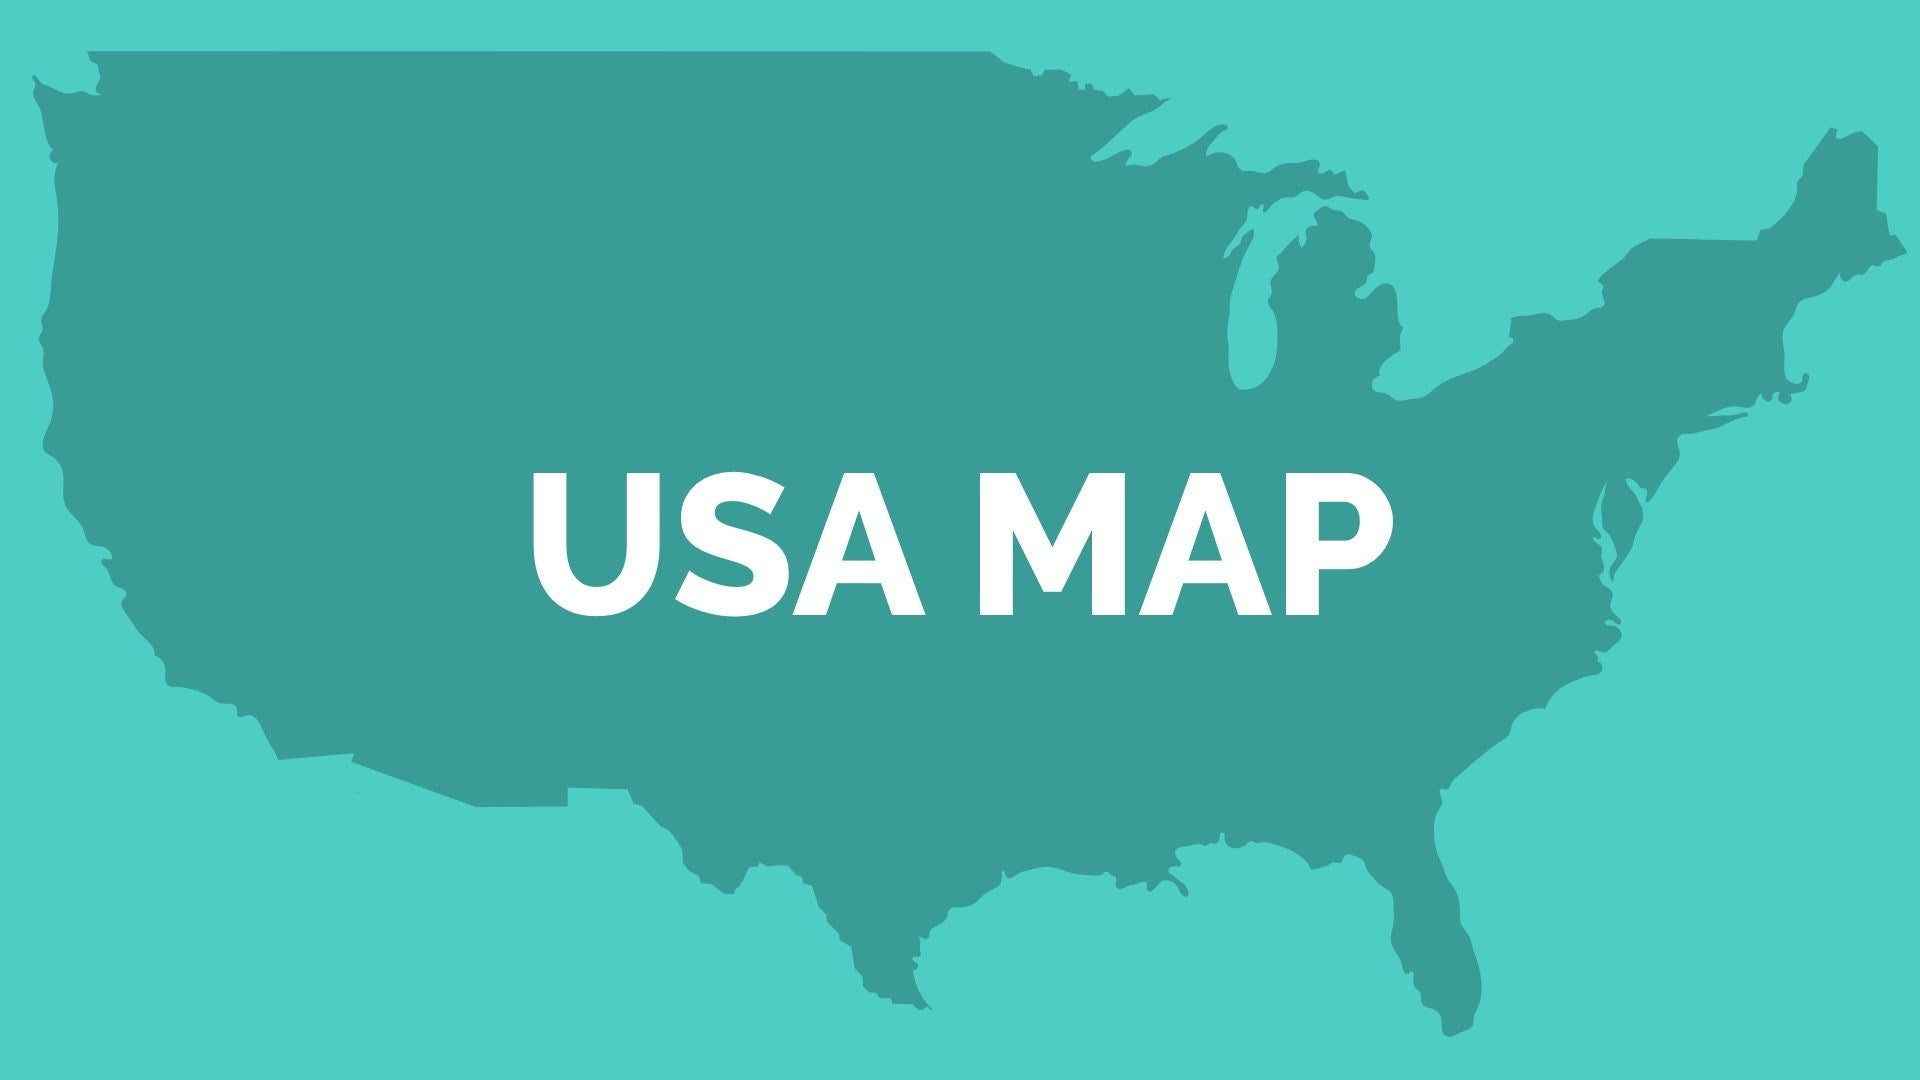 USA Map For PowerPoint Keynote Presentation Shop - Usa map graphic